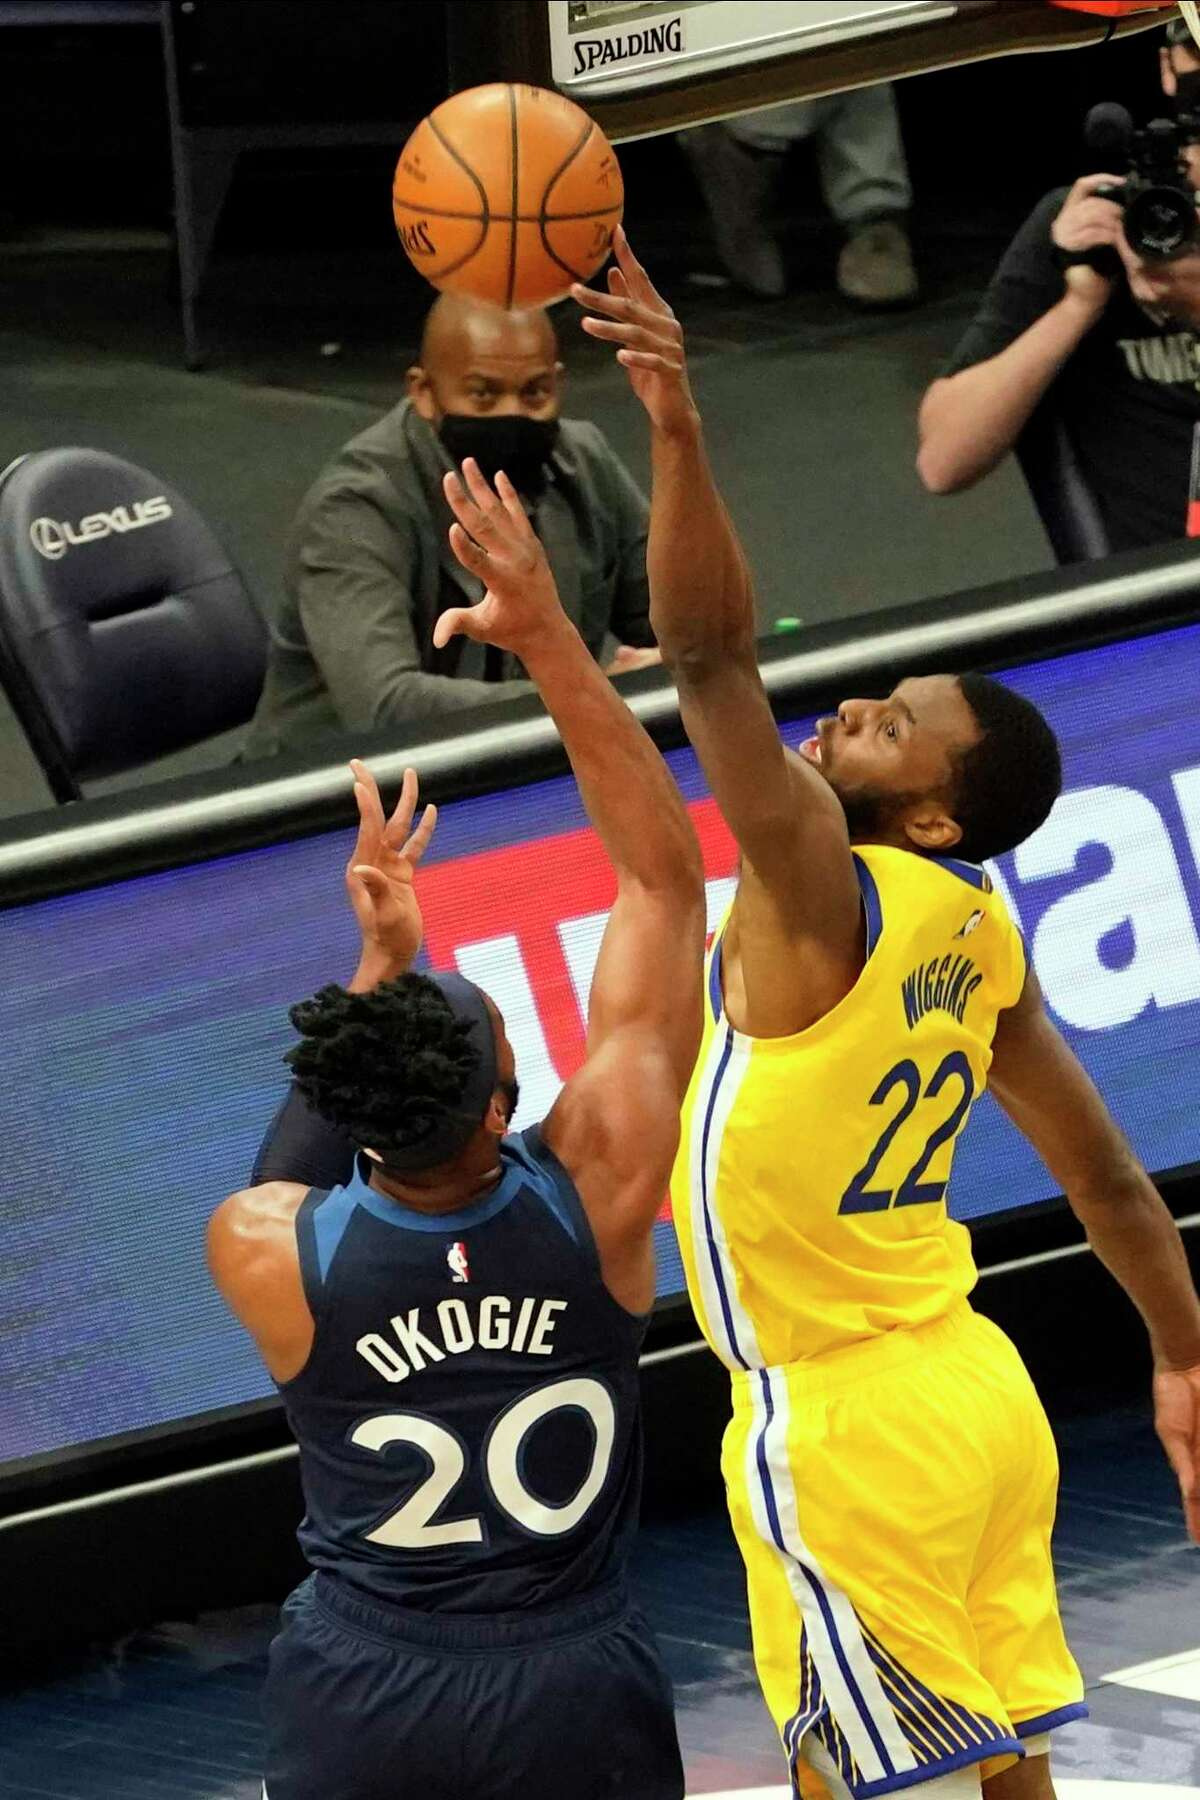 Golden State Warriors' Andrew Wiggins (22) tries to block a shot by Minnesota Timberwolves' Josh Okogie (20) in the first half of an NBA basketball game, Thursday, April 29, 2021, in Minneapolis. (AP Photo/Jim Mone)